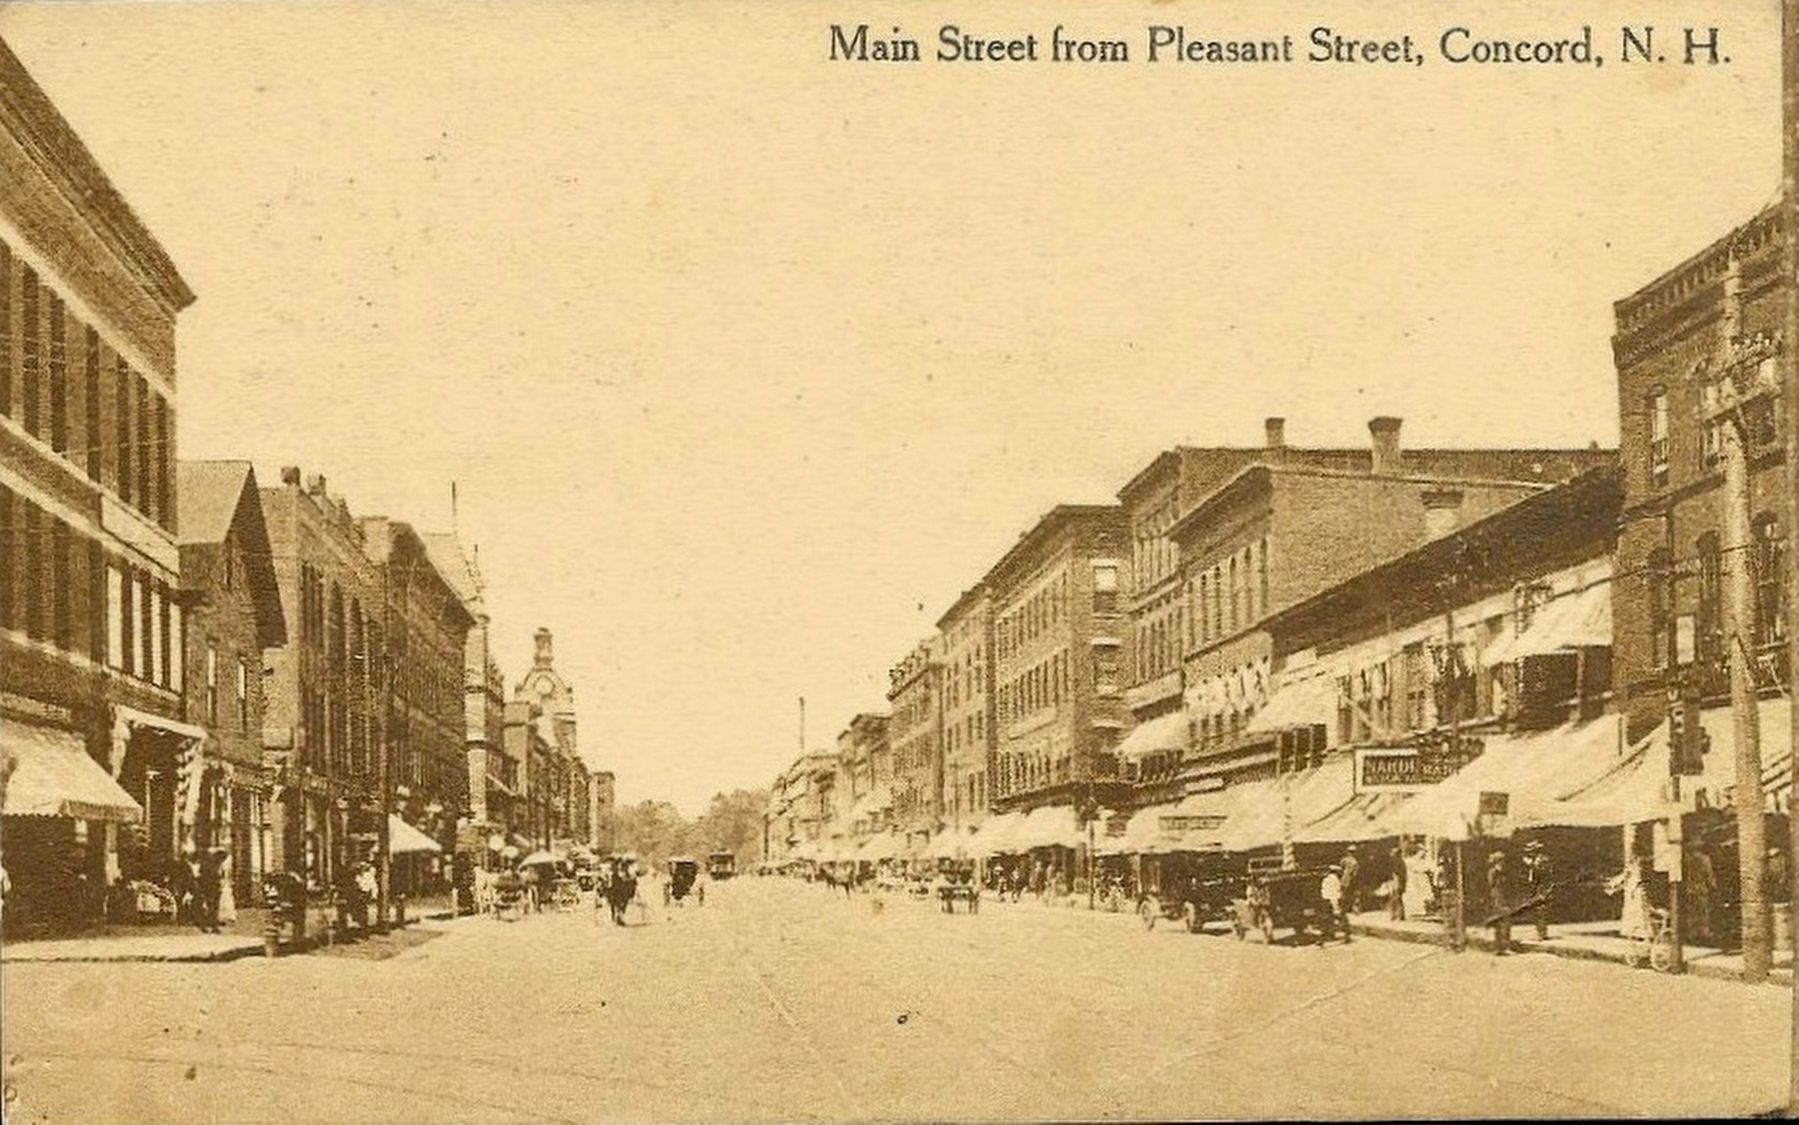 <i>Main Street from Pleasant Street, Concord, N.H.</i> image. Click for full size.